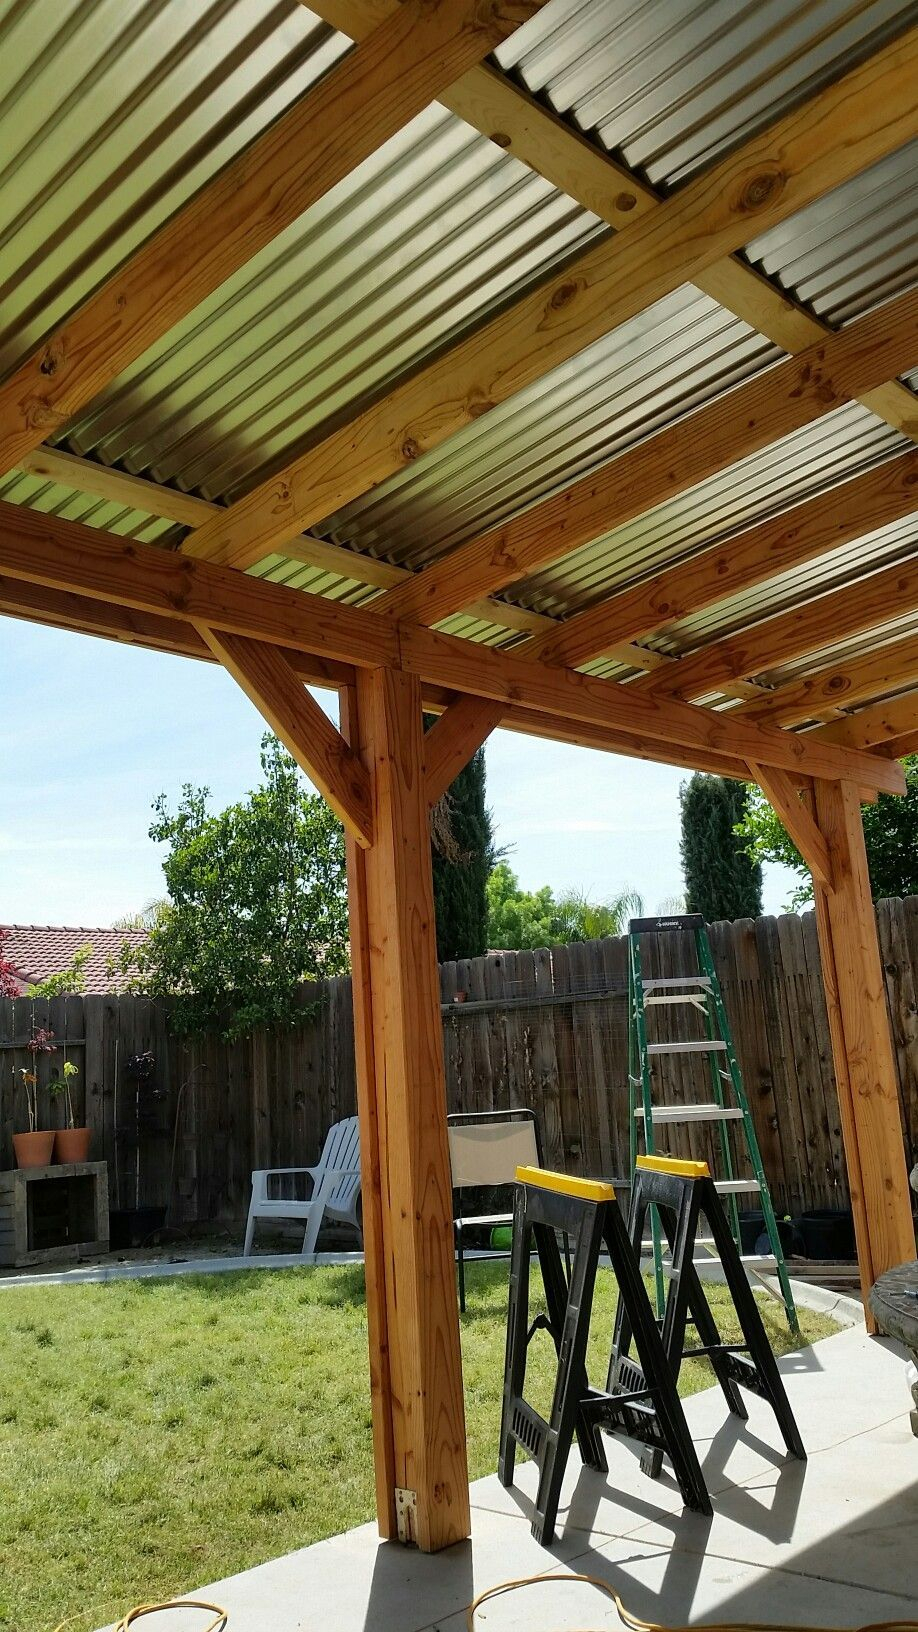 27 Gorgeous Covered Patio Ideas For Your Outdoor Space Best intended for 12 Genius Concepts of How to Build Backyard Patio Roof Ideas